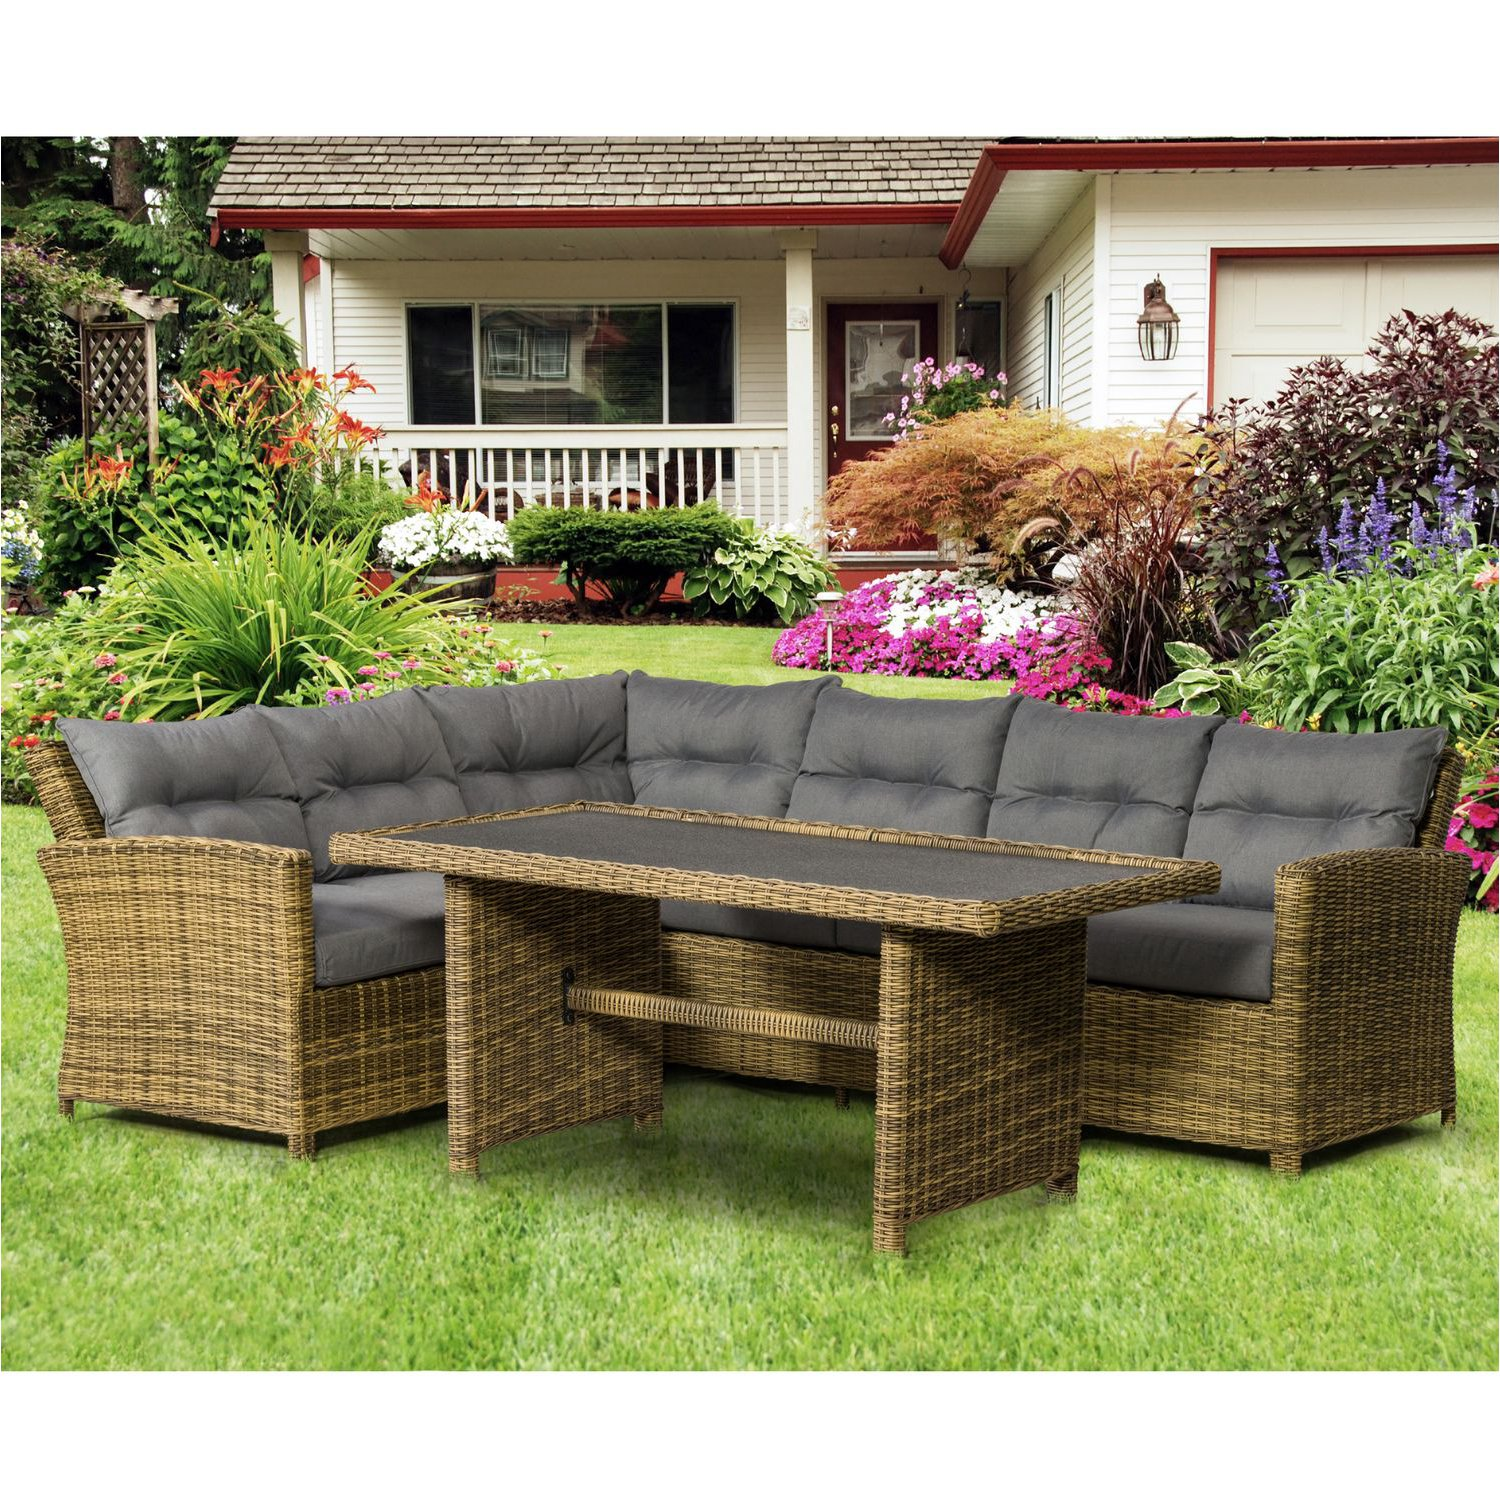 image-Royalcraft Garden Modena Corner Dining Set with Weather Shield Fabric Cushions